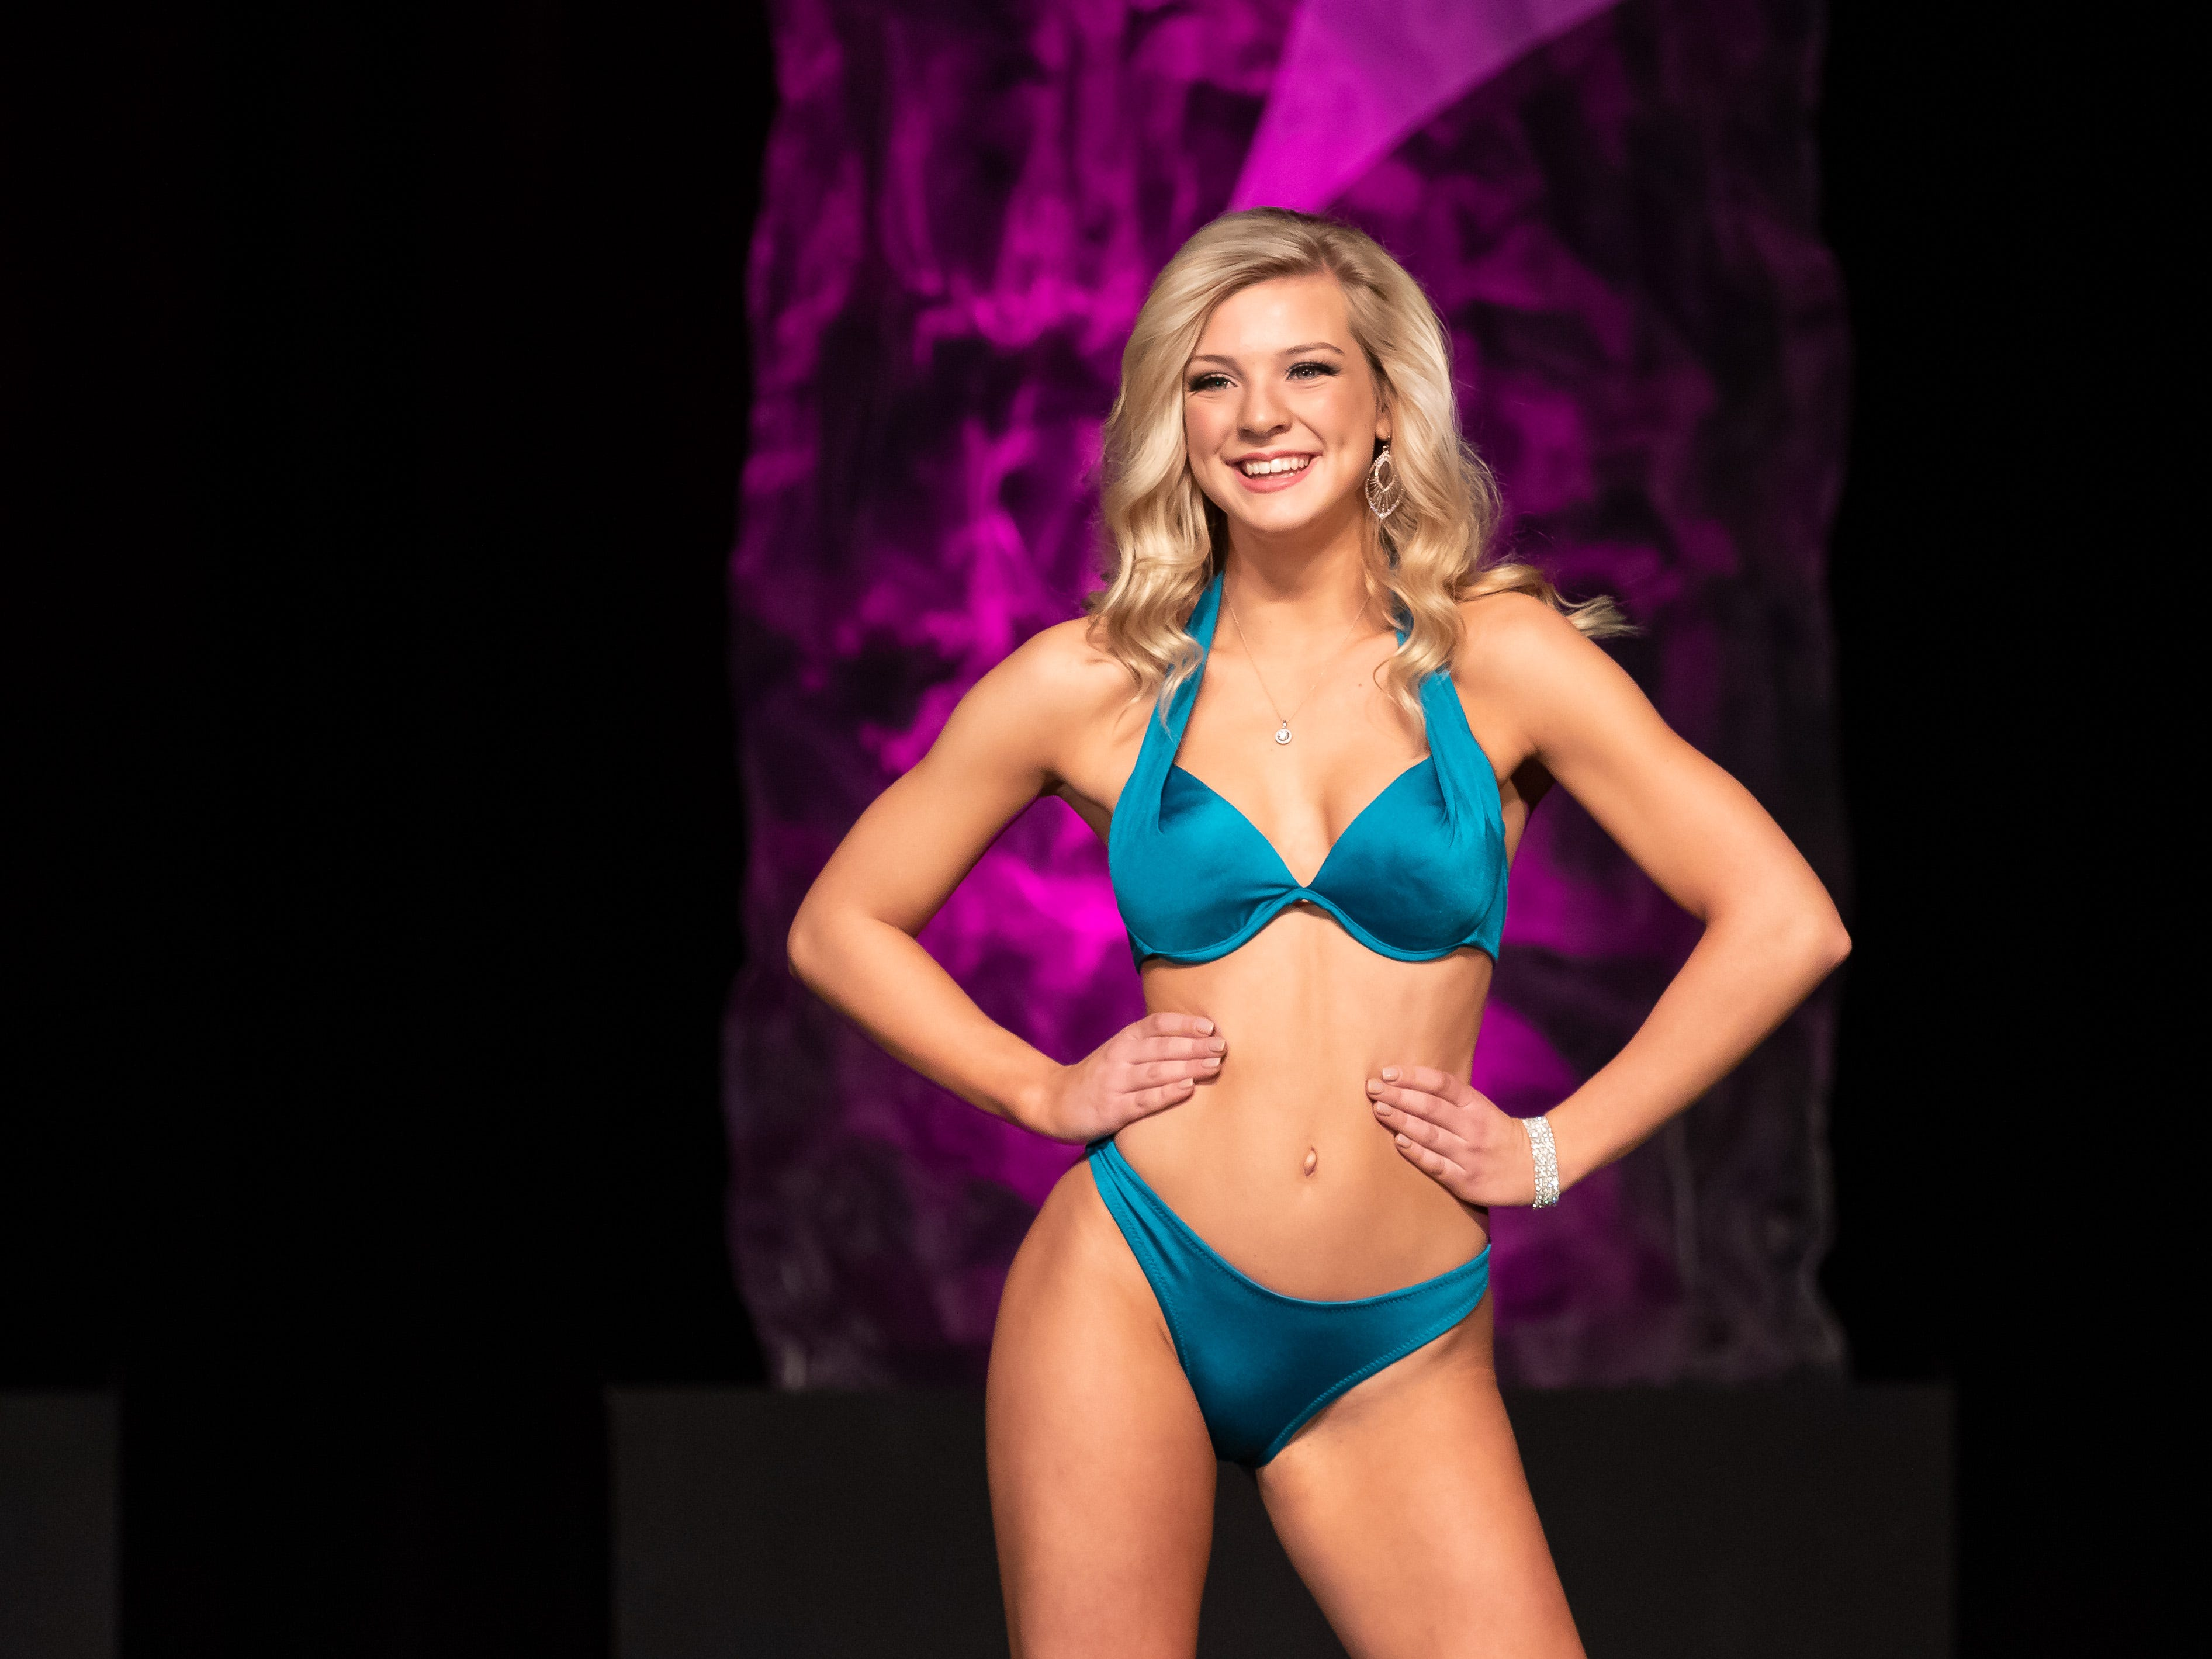 Casey Abbrederis competes in the Lifestyle and Fitness in a Swimsuit competition during the 2019 Miss Wisconsin Rapids Area Scholarship Pageant on Saturday, Oct. 27, 2018, at the Performing Arts Center of Wisconsin Rapids.